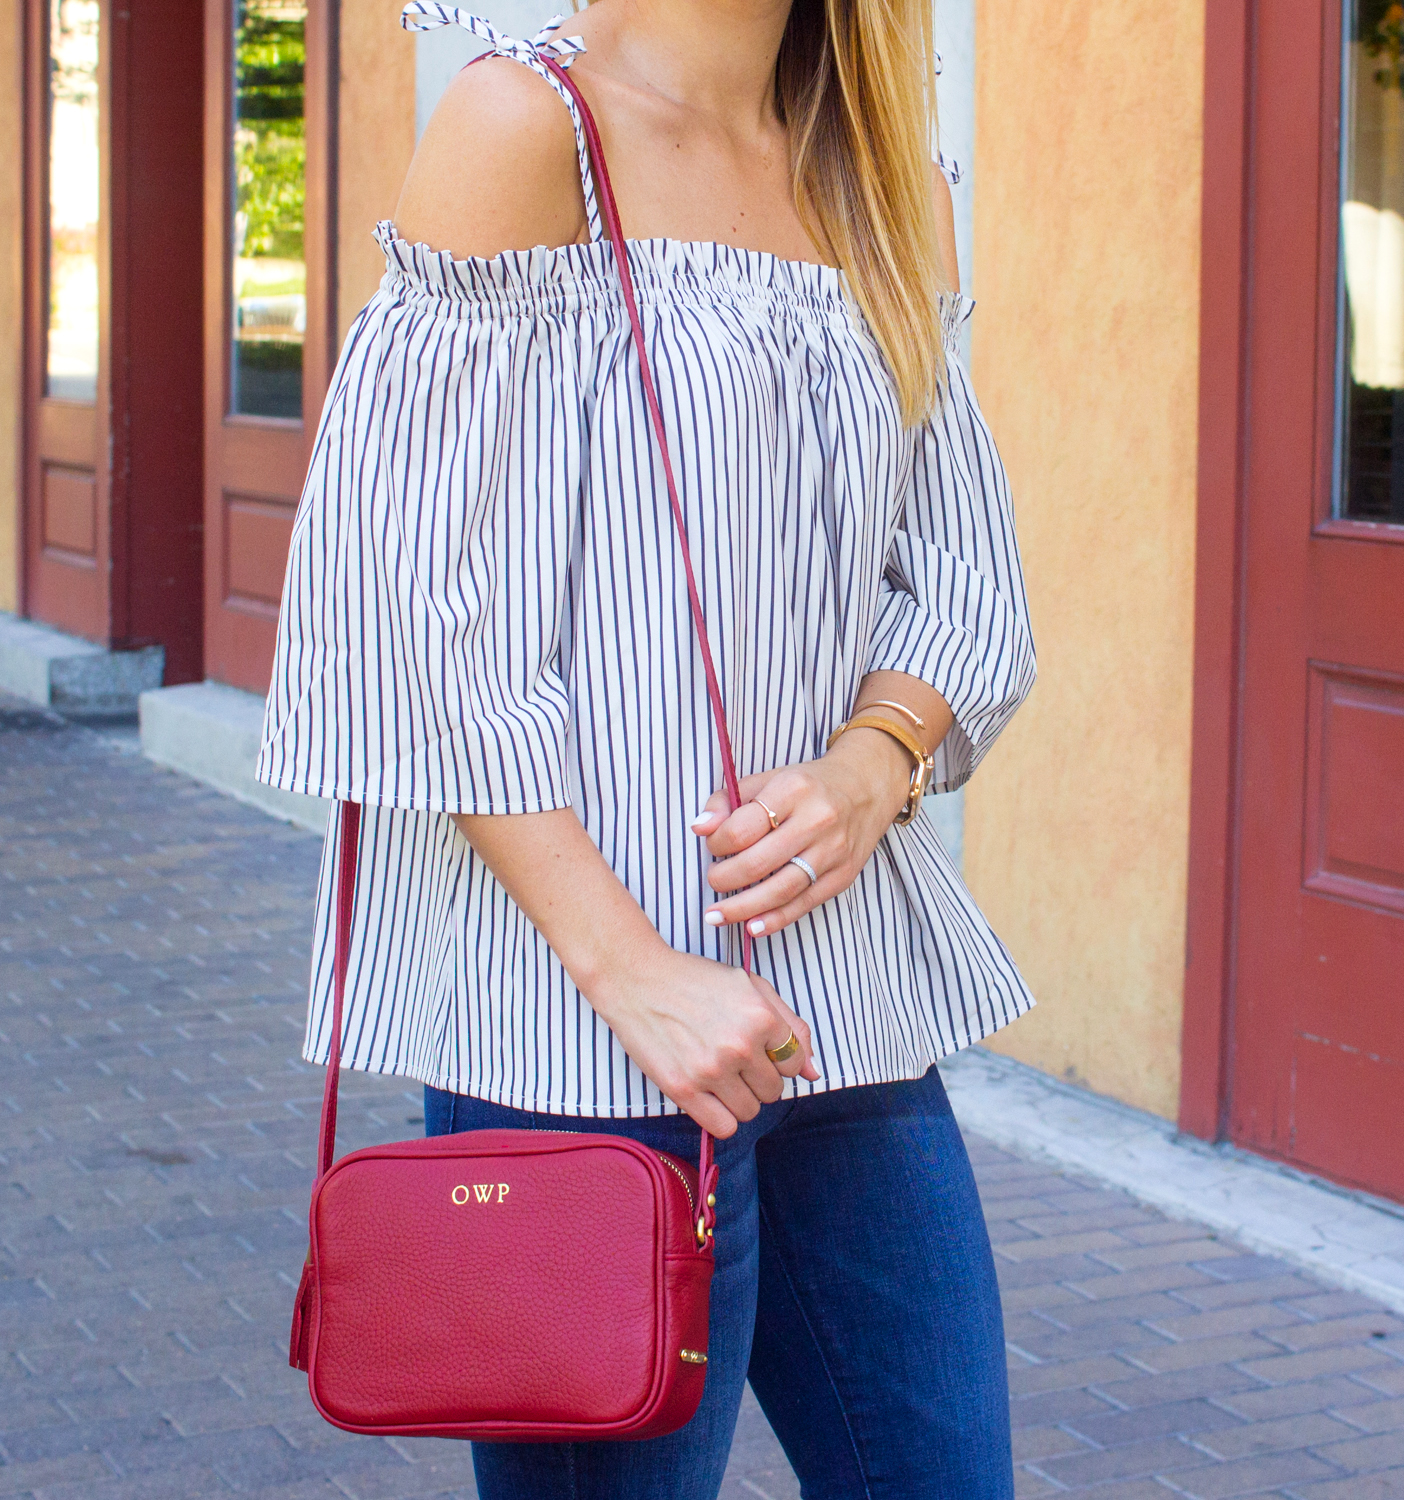 livvyland-blog-goodnight-macaroon-cold-shoulder-striped-top-austin-second-street-district-red-monogram-handbag-dl-1961-emma-jeans-10